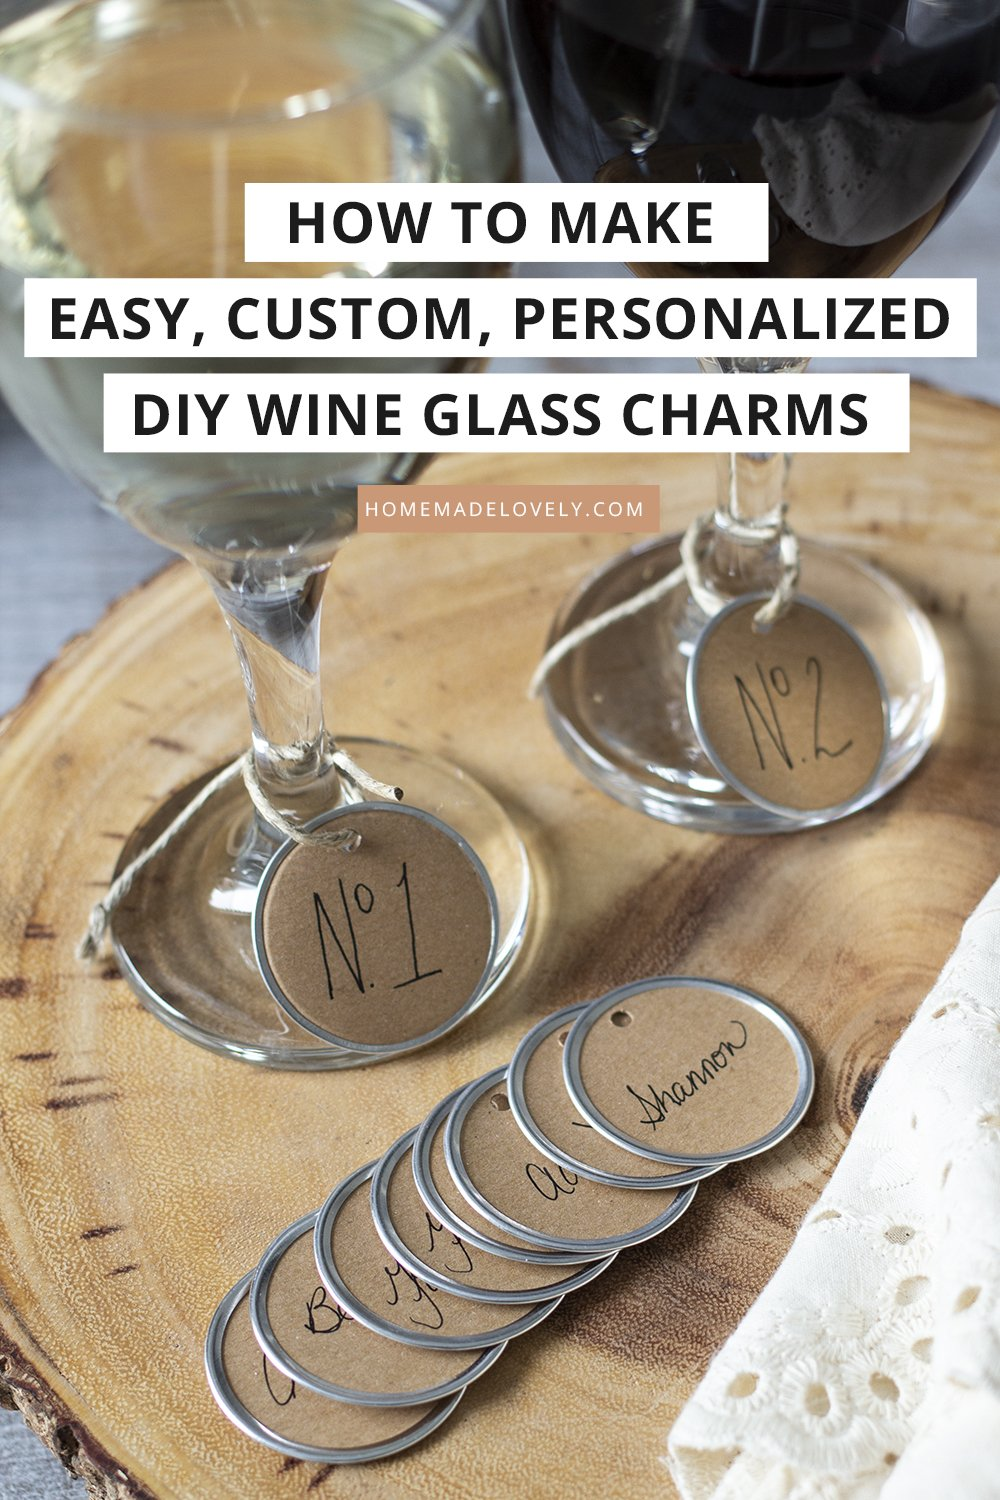 How to Make Easy, Custom, Personalized DIY Wine Glass Charms